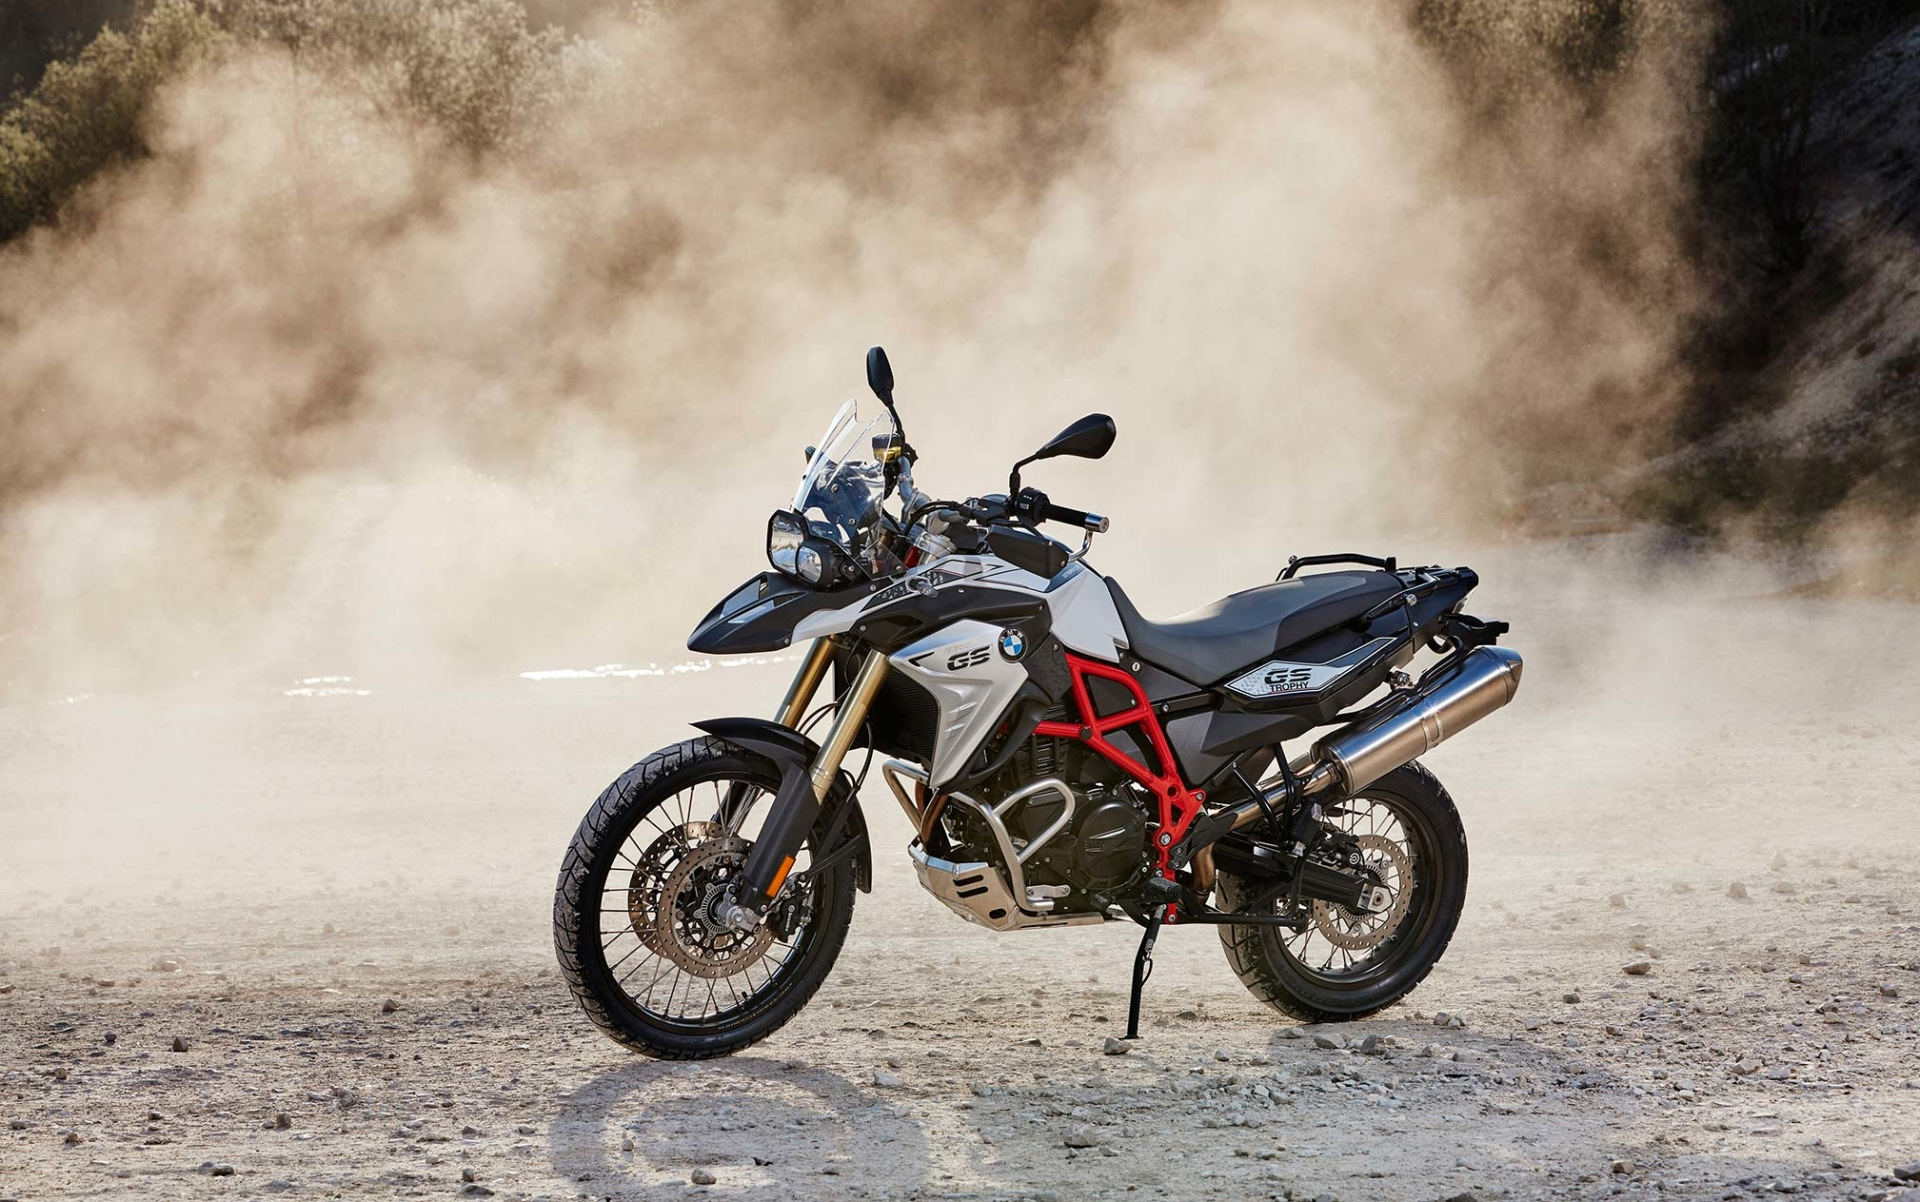 BMW F700GS Motorcycle Wallpaper